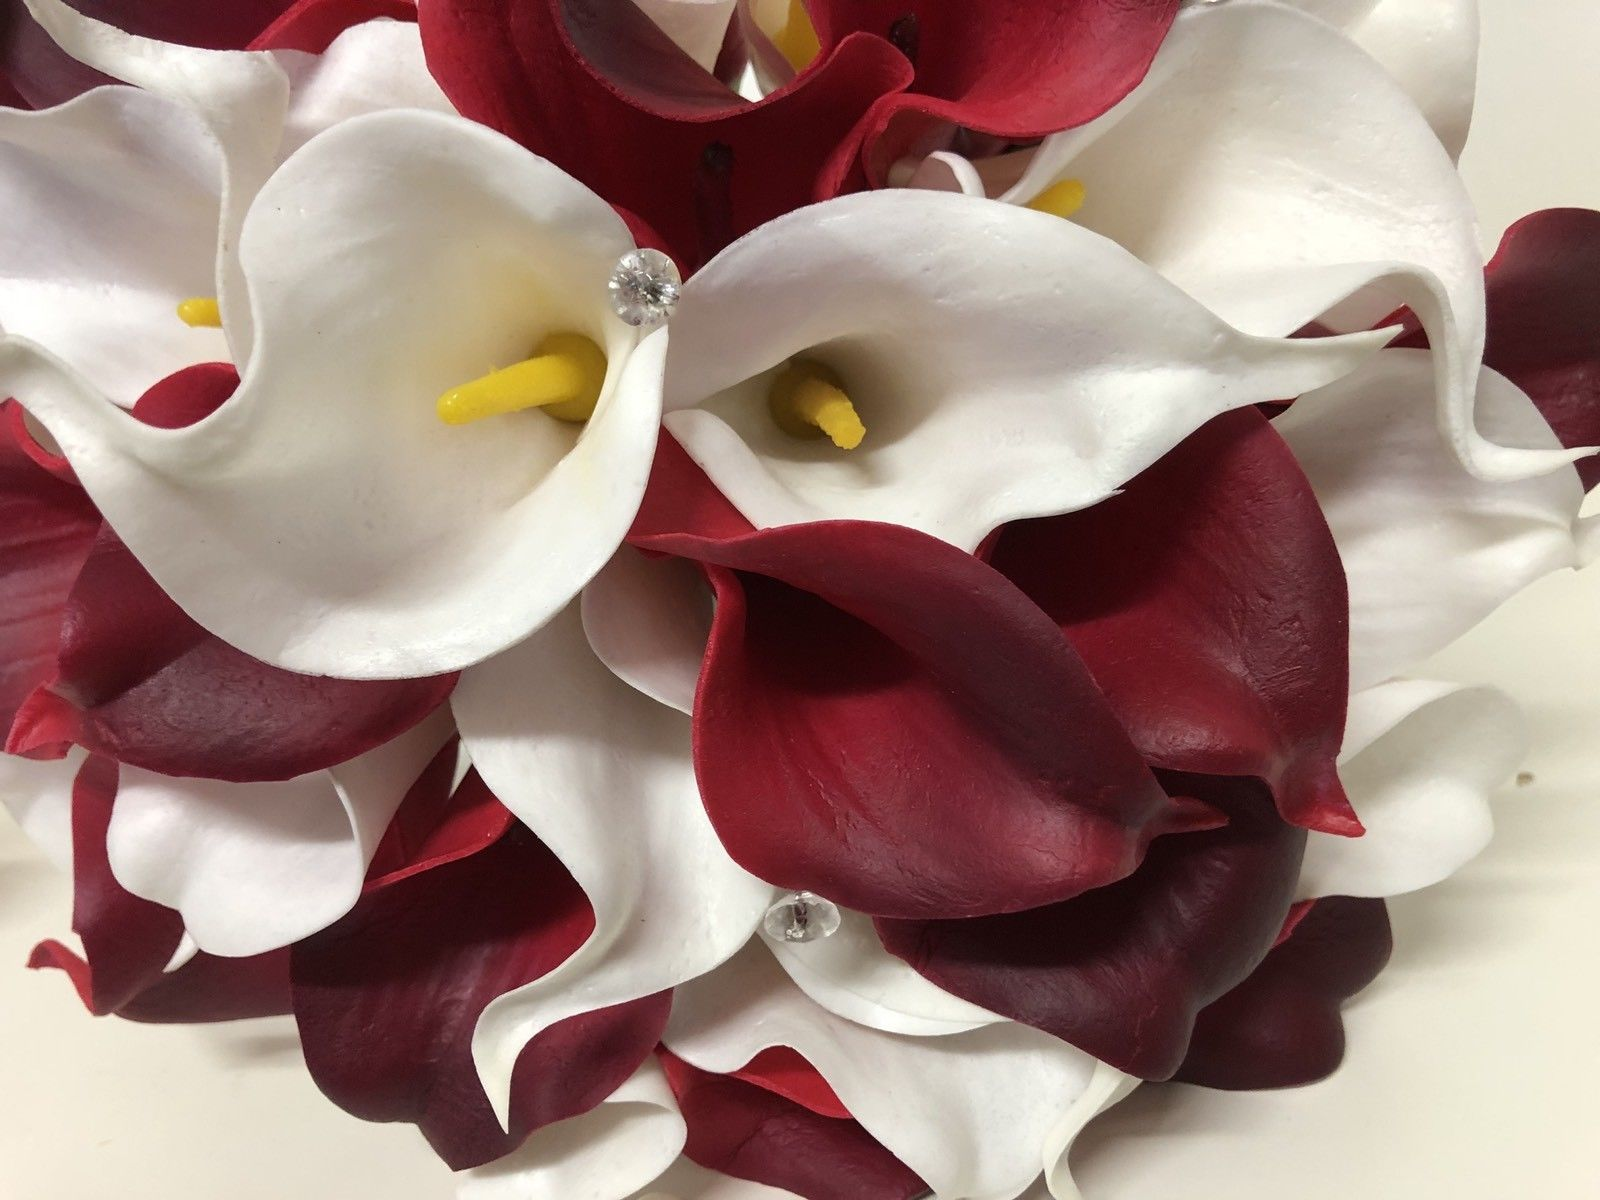 Wedding flowers artificial calla lily bride bouquet white dark red wedding flowers artificial calla lily bride bouquet white dark red burgundy izmirmasajfo